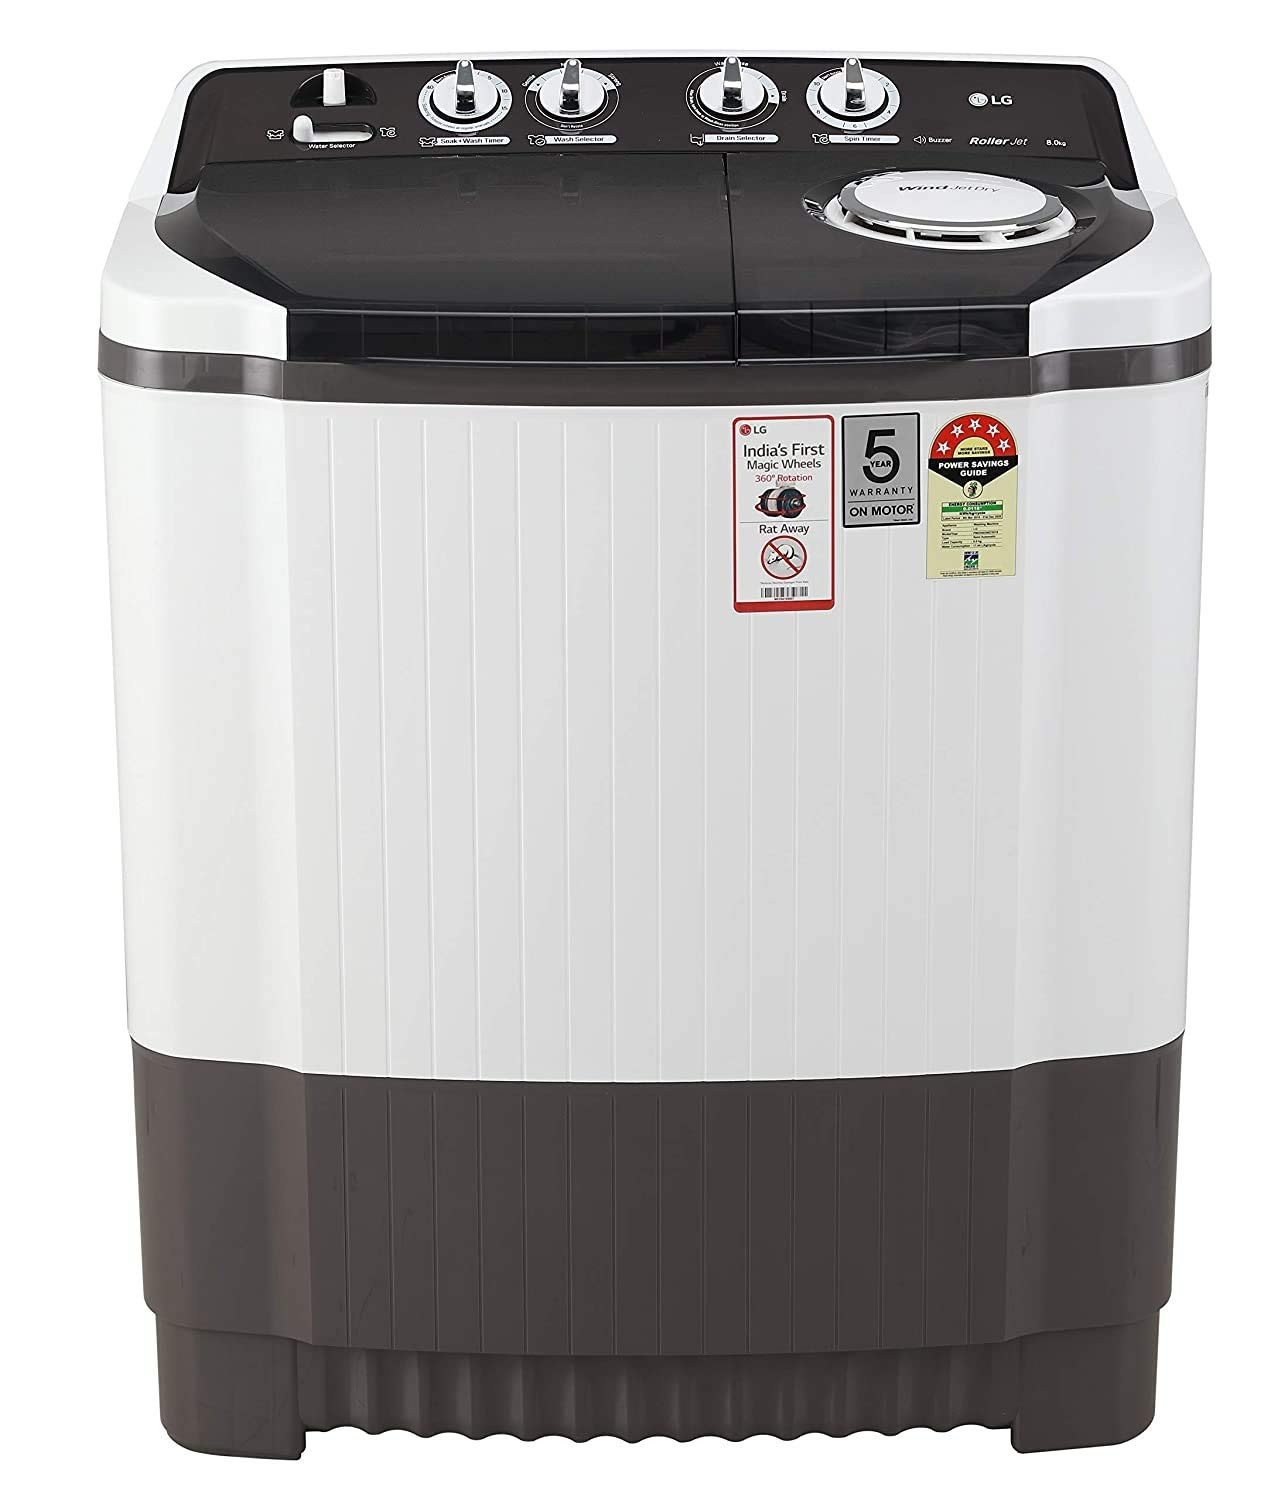 LG 8 Kg 5 Star Semi-Automatic Top Loading Washing Machine (P8035SGMZ, Grey)